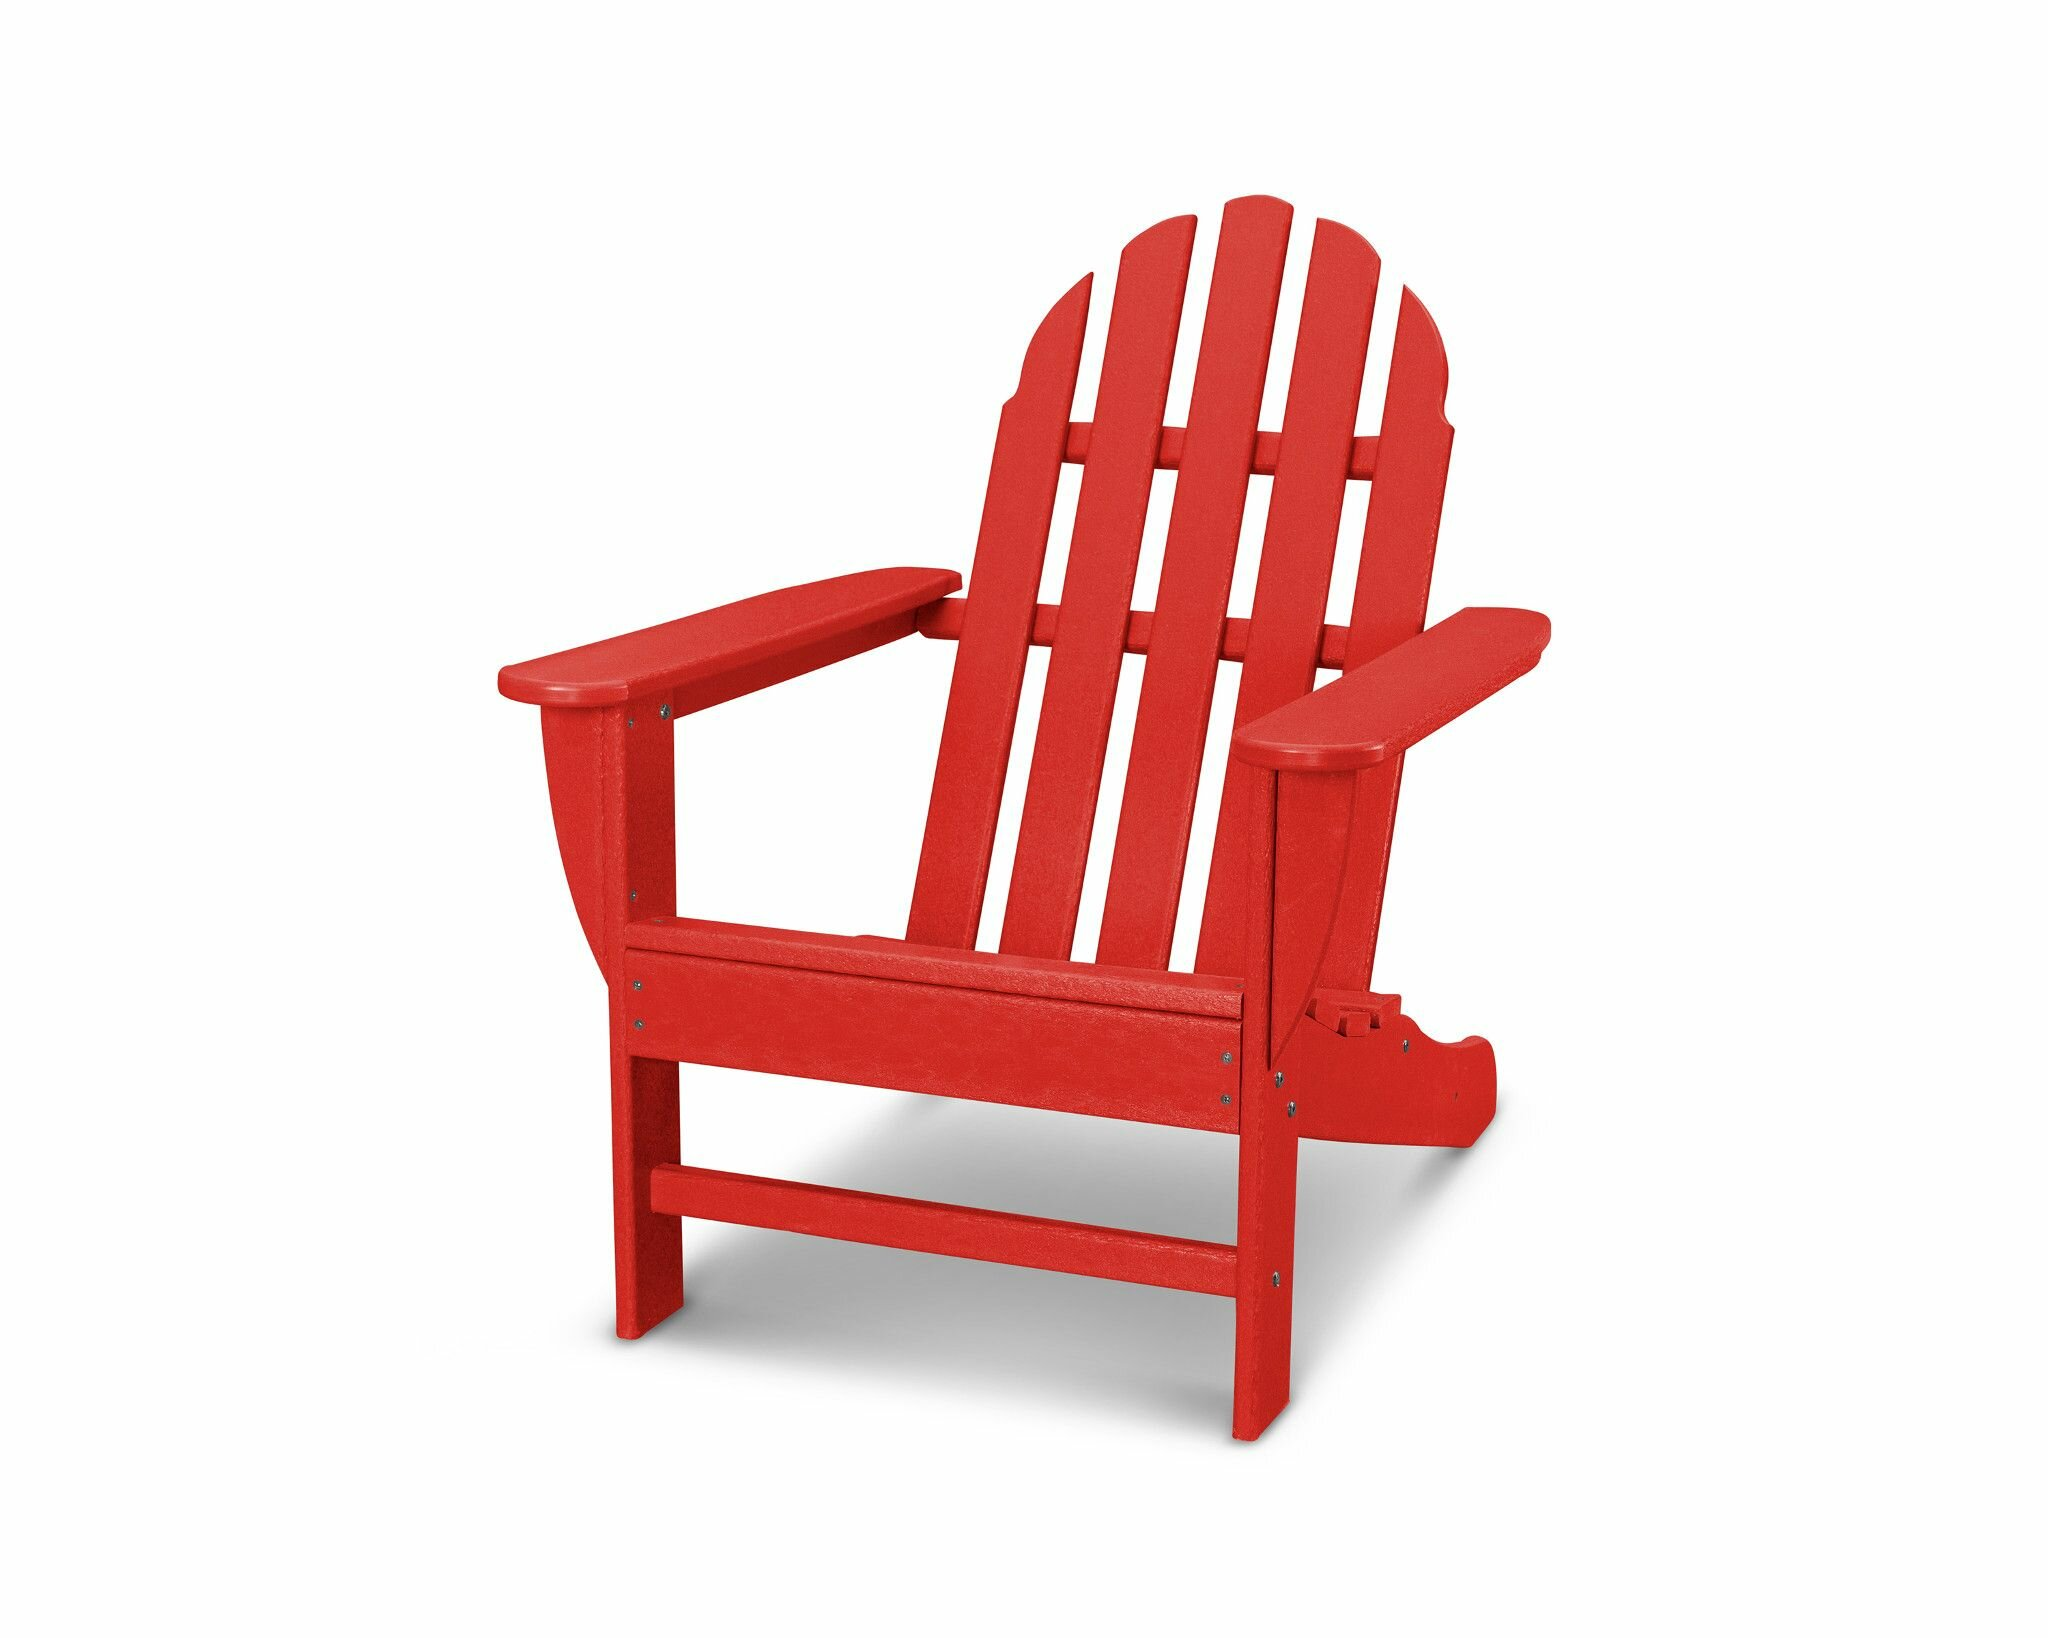 Remarkable Belfast Plastic Resin Adirondack Chair Home Interior And Landscaping Ferensignezvosmurscom